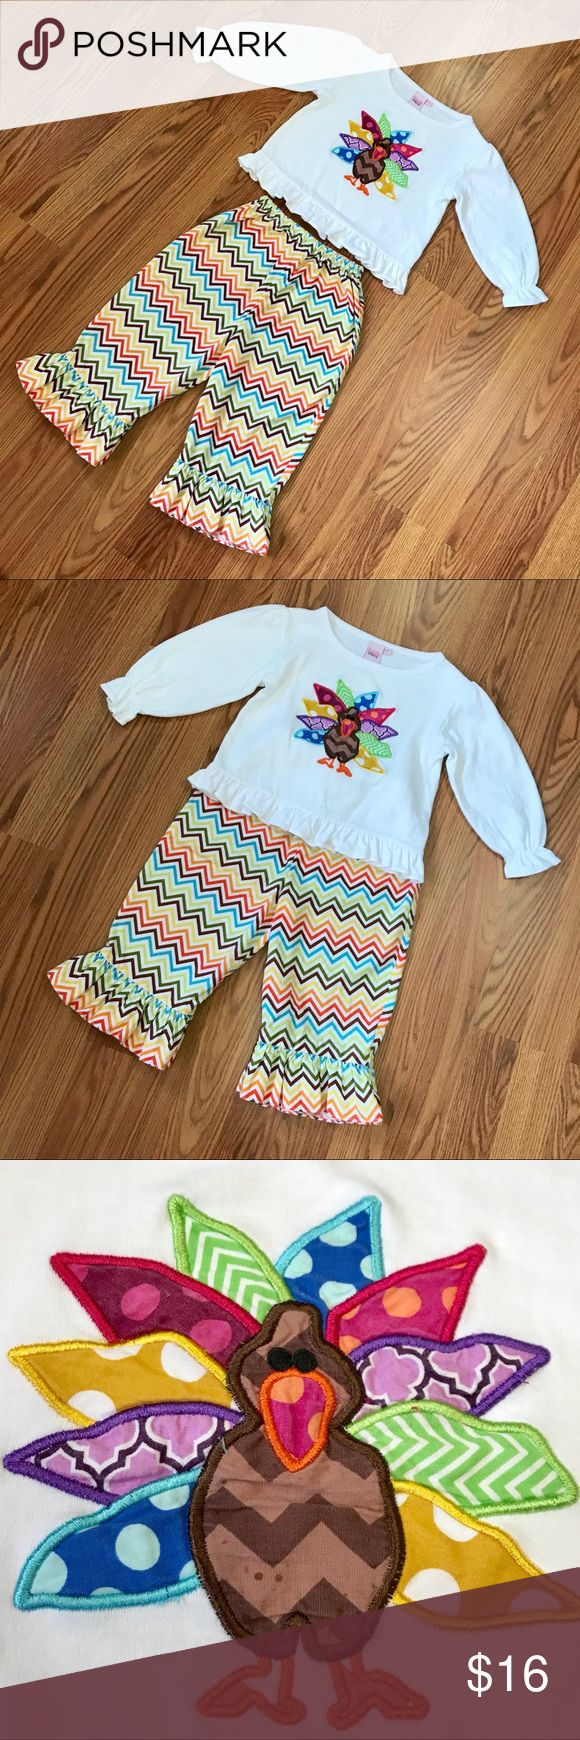 "Boutique Appliqué Turkey Top/Chevron Pants Outfit Top is a size 4T but runs a little small in my opinion, maybe like a 3-4T. Brand of top is Natalie Grant See pics for measurements. Adorable ruffle chevron pants are 3T and inseam length is 11"". Both in great used condition from a smoke/pet free home. Natalie Grant Matching Sets"